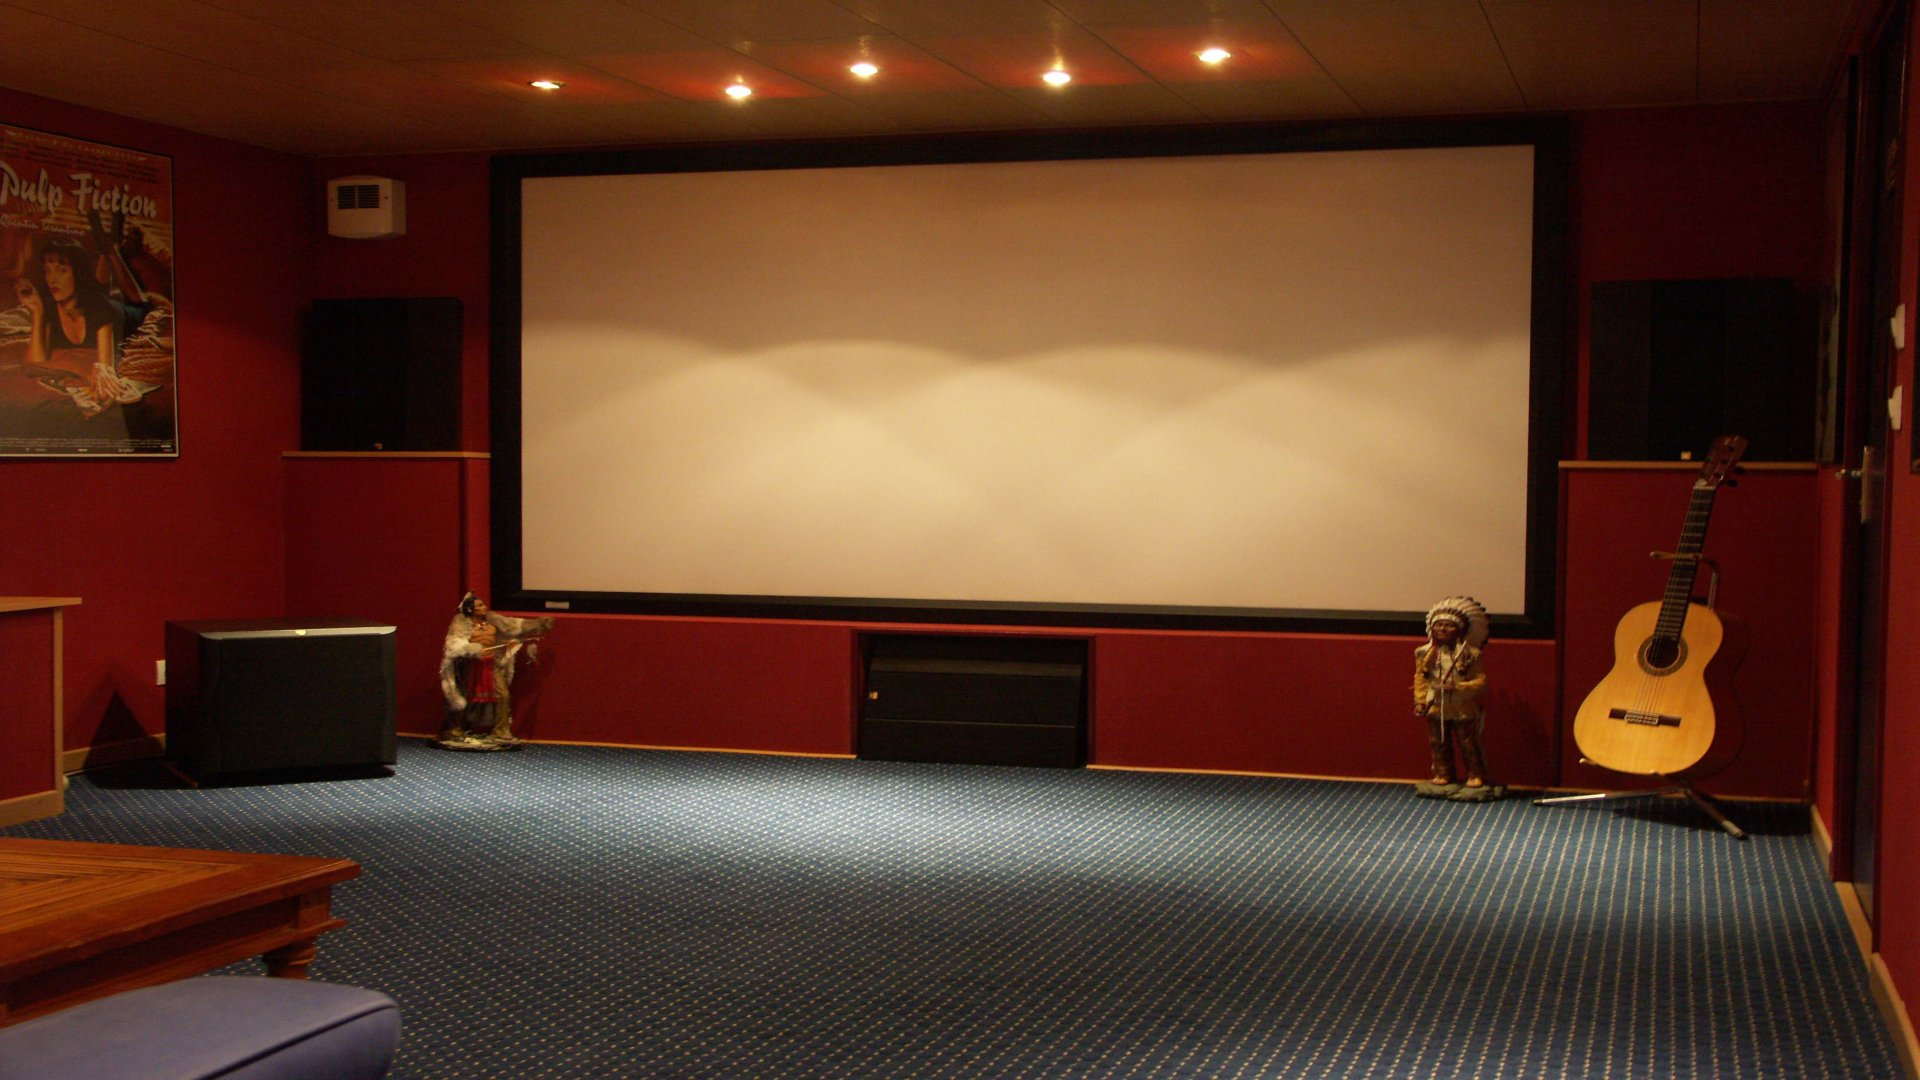 Home theater wallpaper wallpapersafari for Wallpaper hd home movie